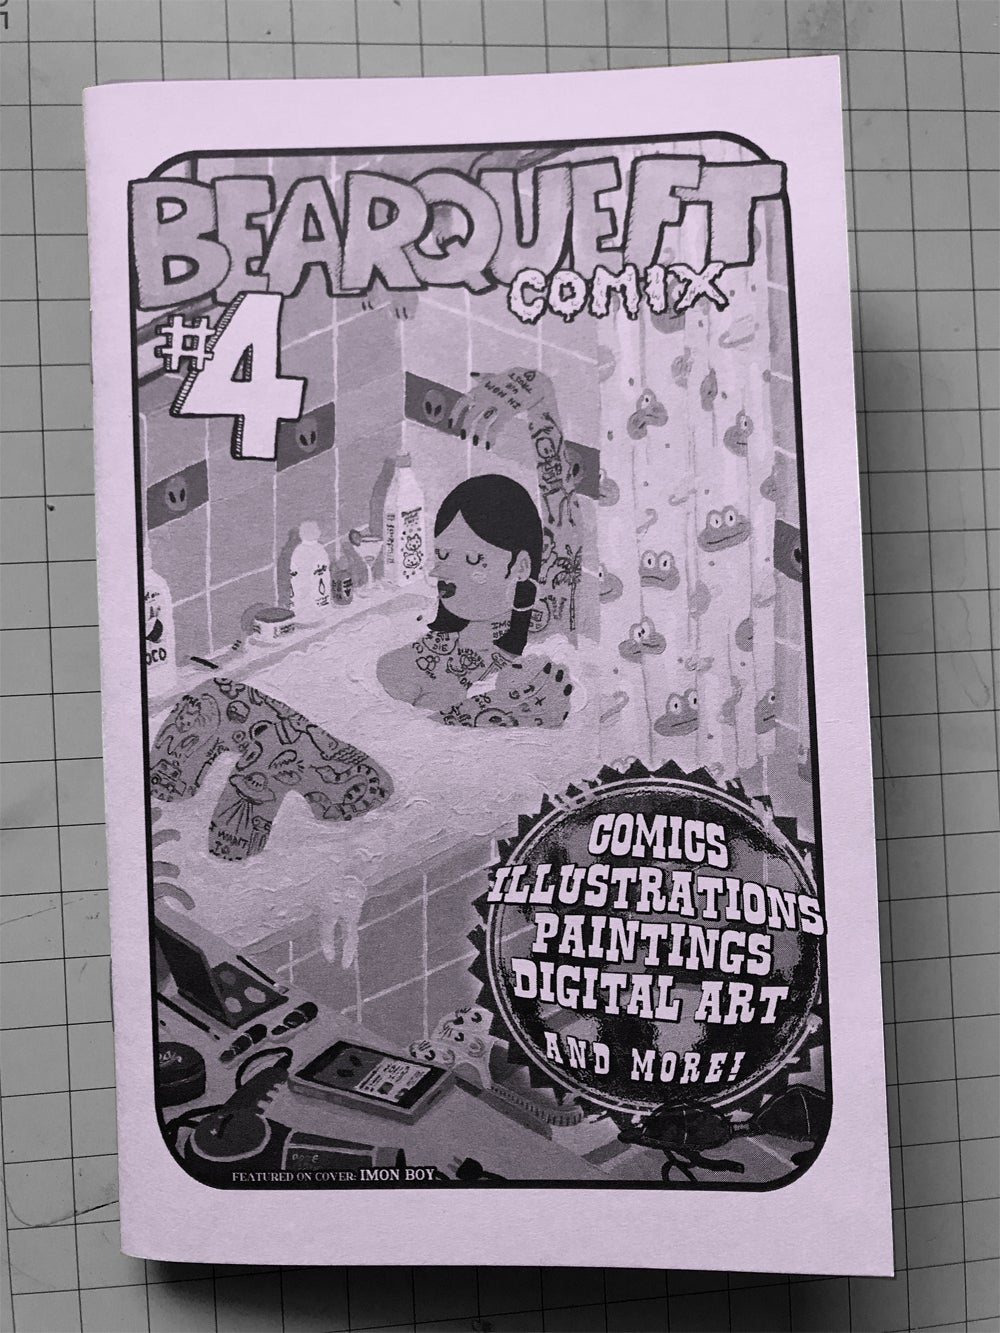 Image of Bearqueft Comix - Issue #4